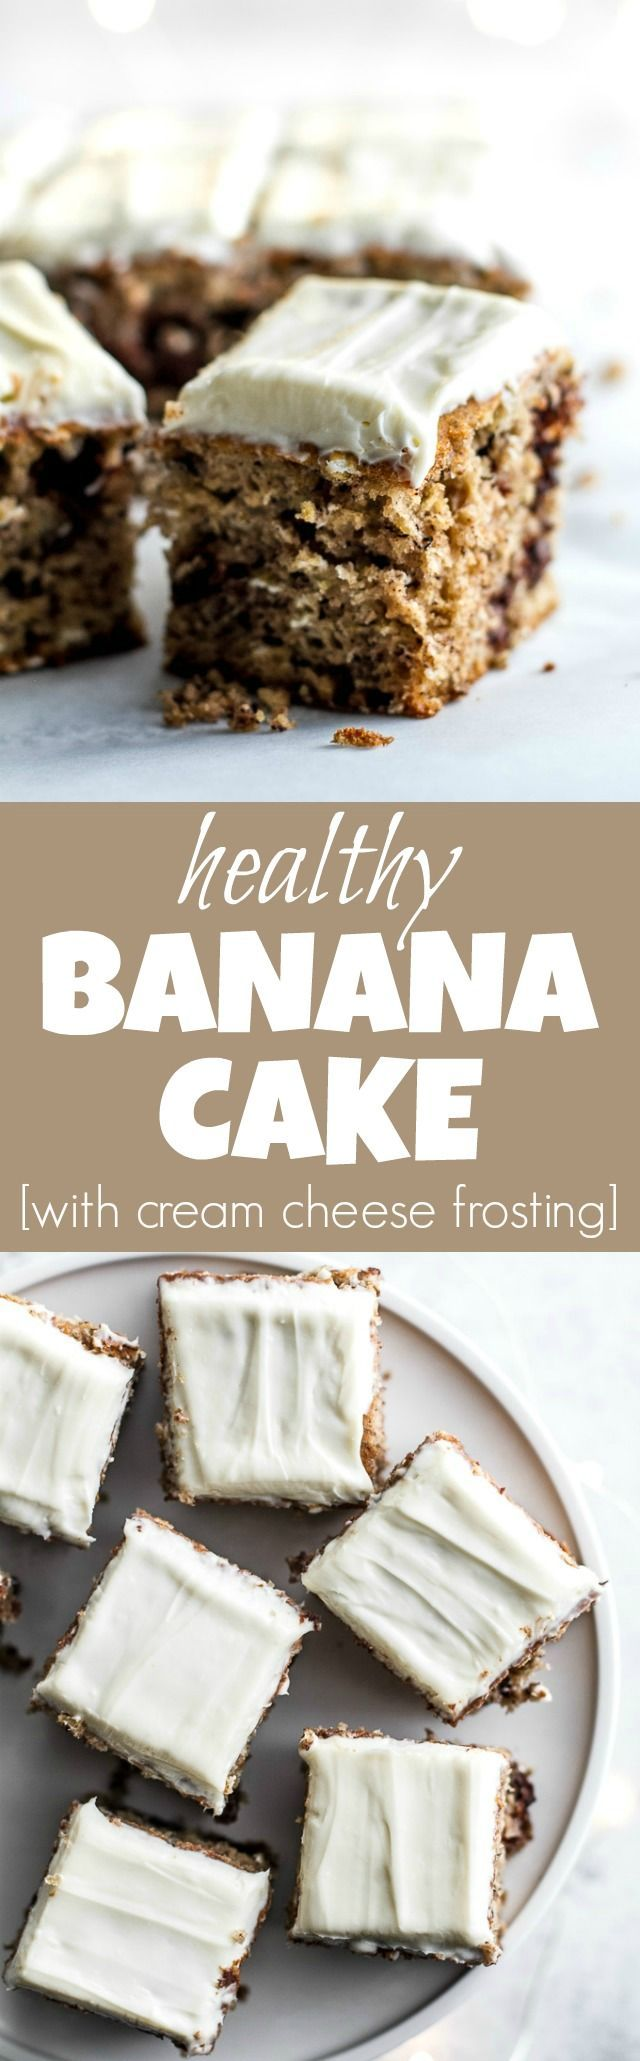 Healthy Banana Cake made without butter or oil, but so tender and flavourful that you'd never be able to tell. Topped with a lightened-up cream cheese frosting, this delicious banana-flavoured cake feels decadent but is actually surprisingly healthy | http://runningwithspoons.com